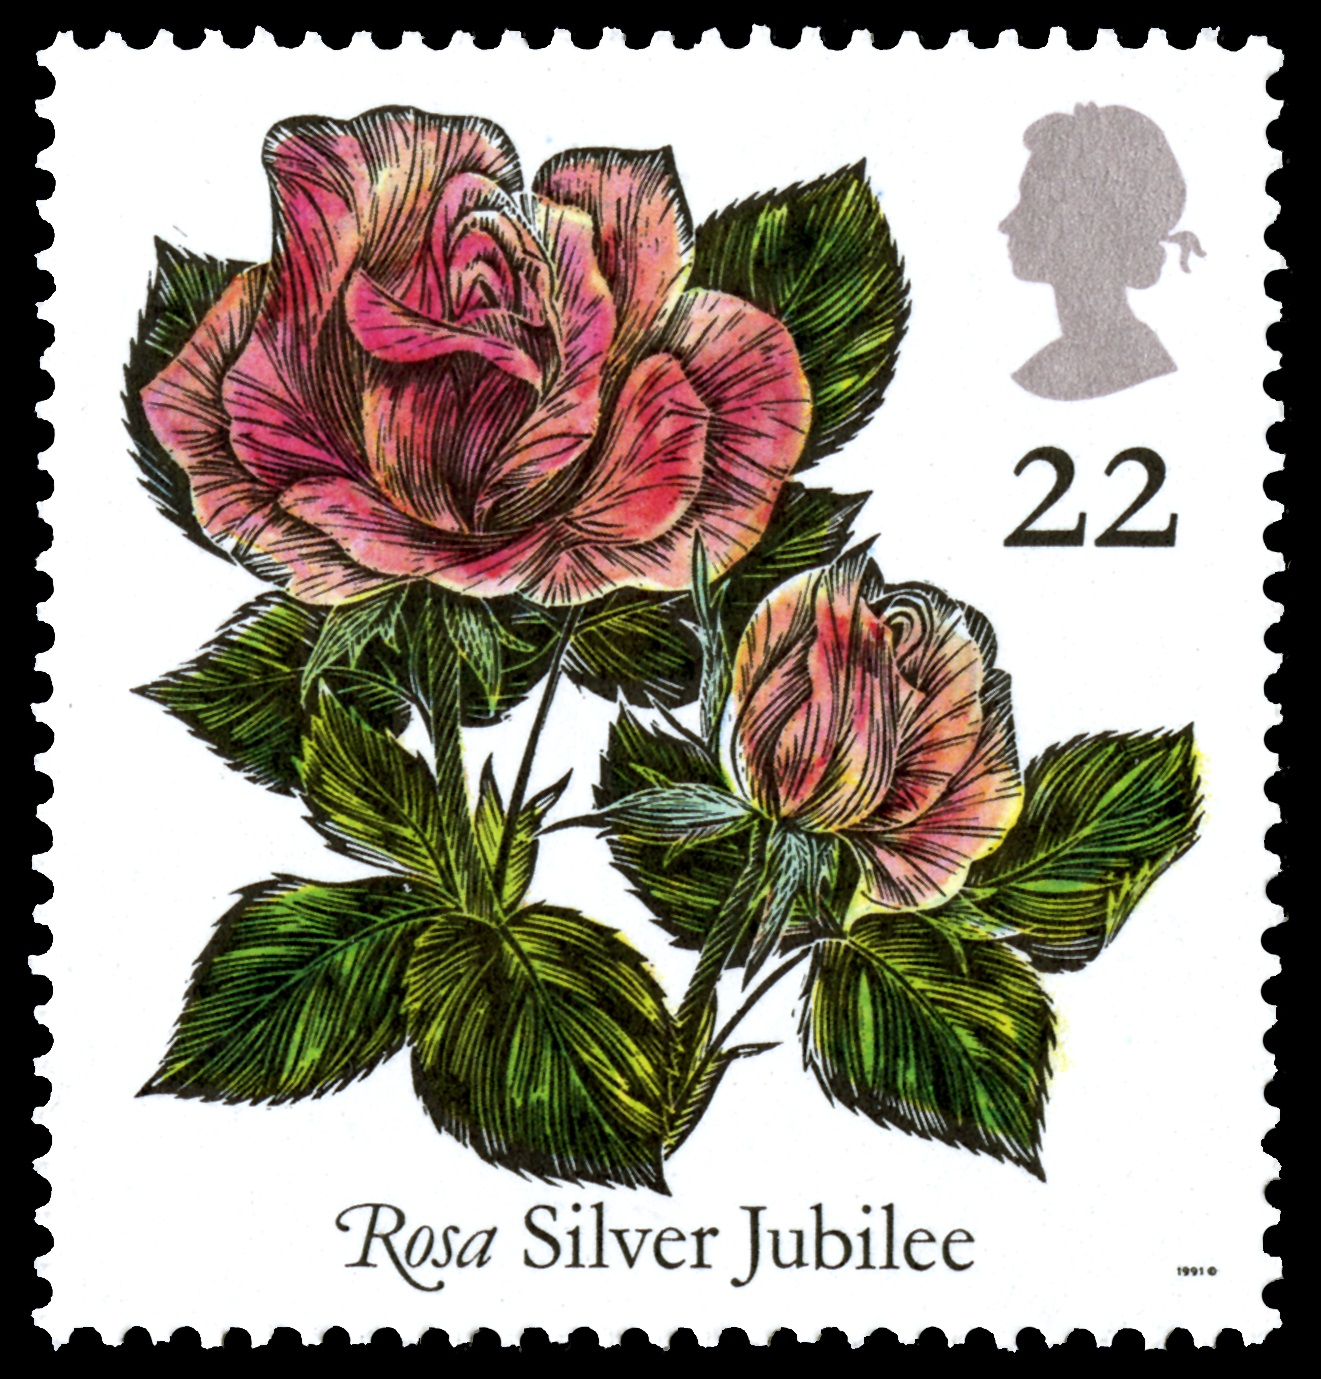 Red rose stamp with a value of 22 pence.